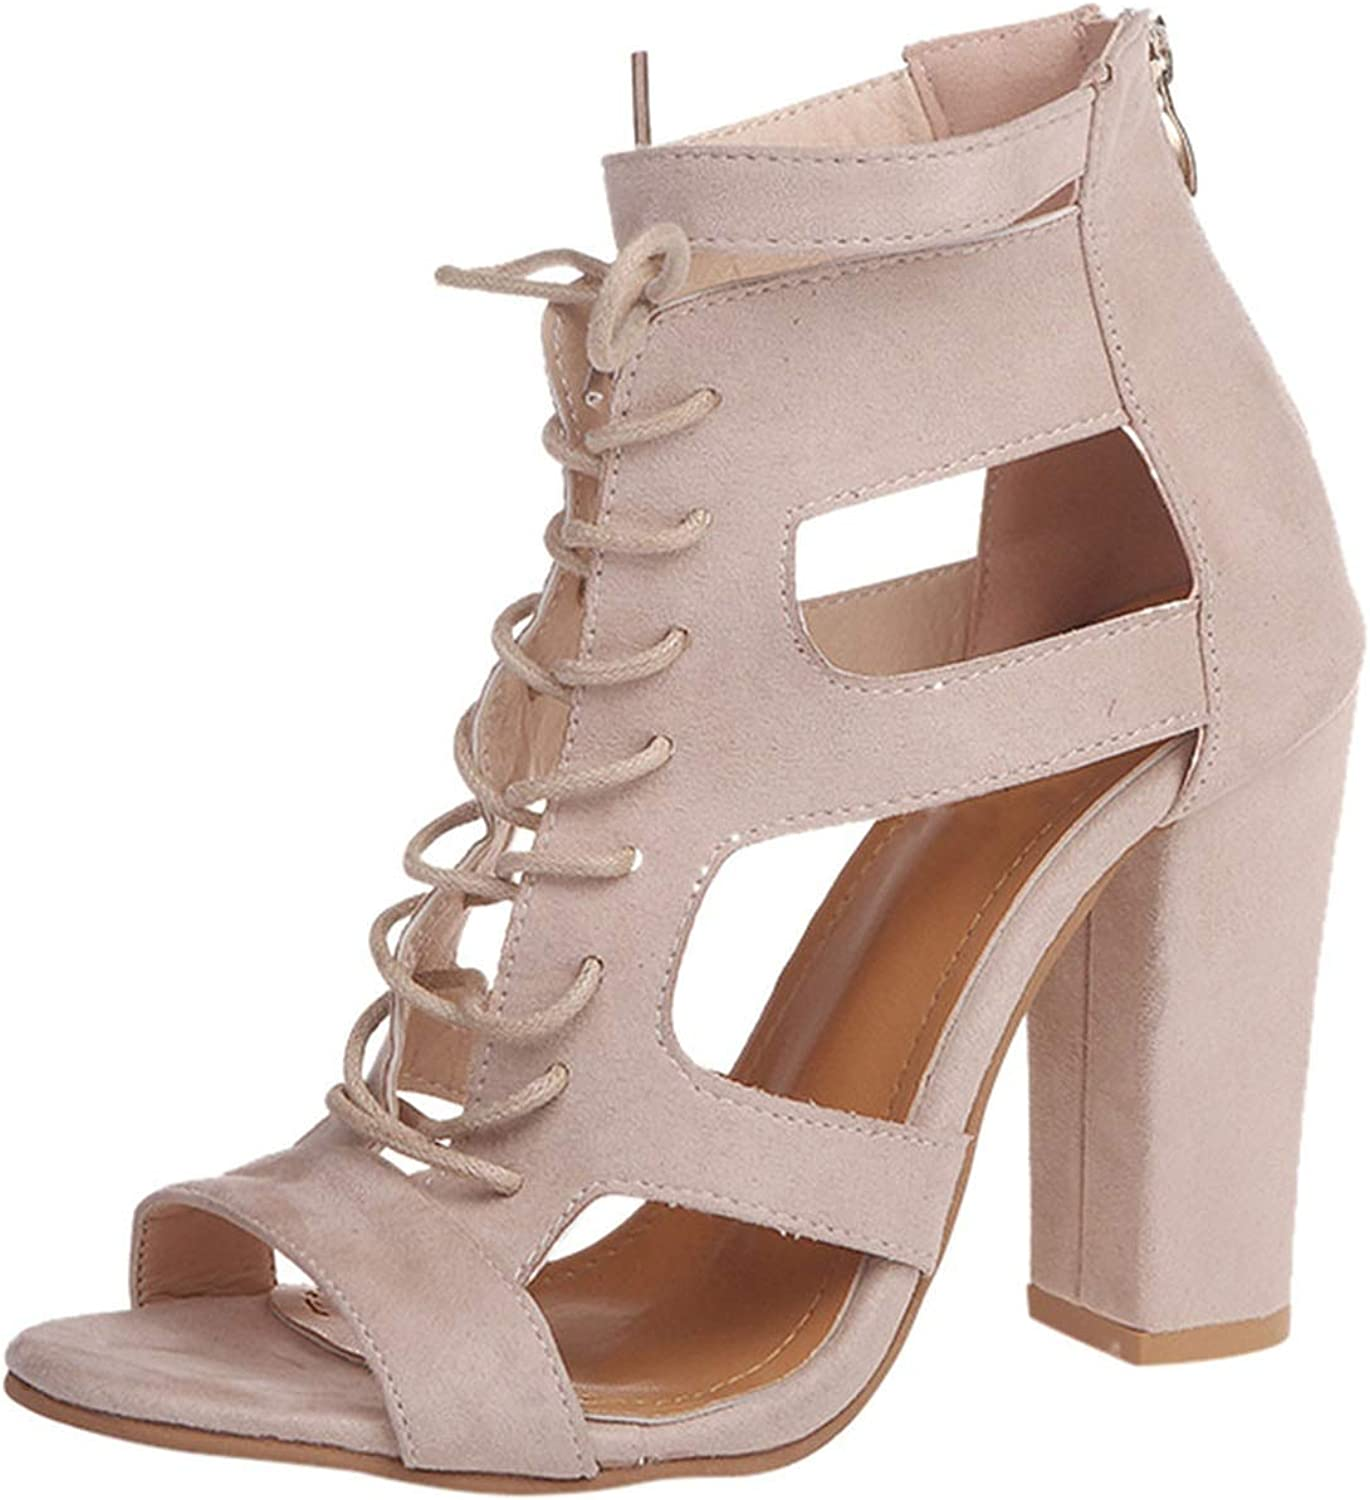 High Heels Sandals Scrub Hollow Out Cross Tied Rome shoes Super Heel shoes